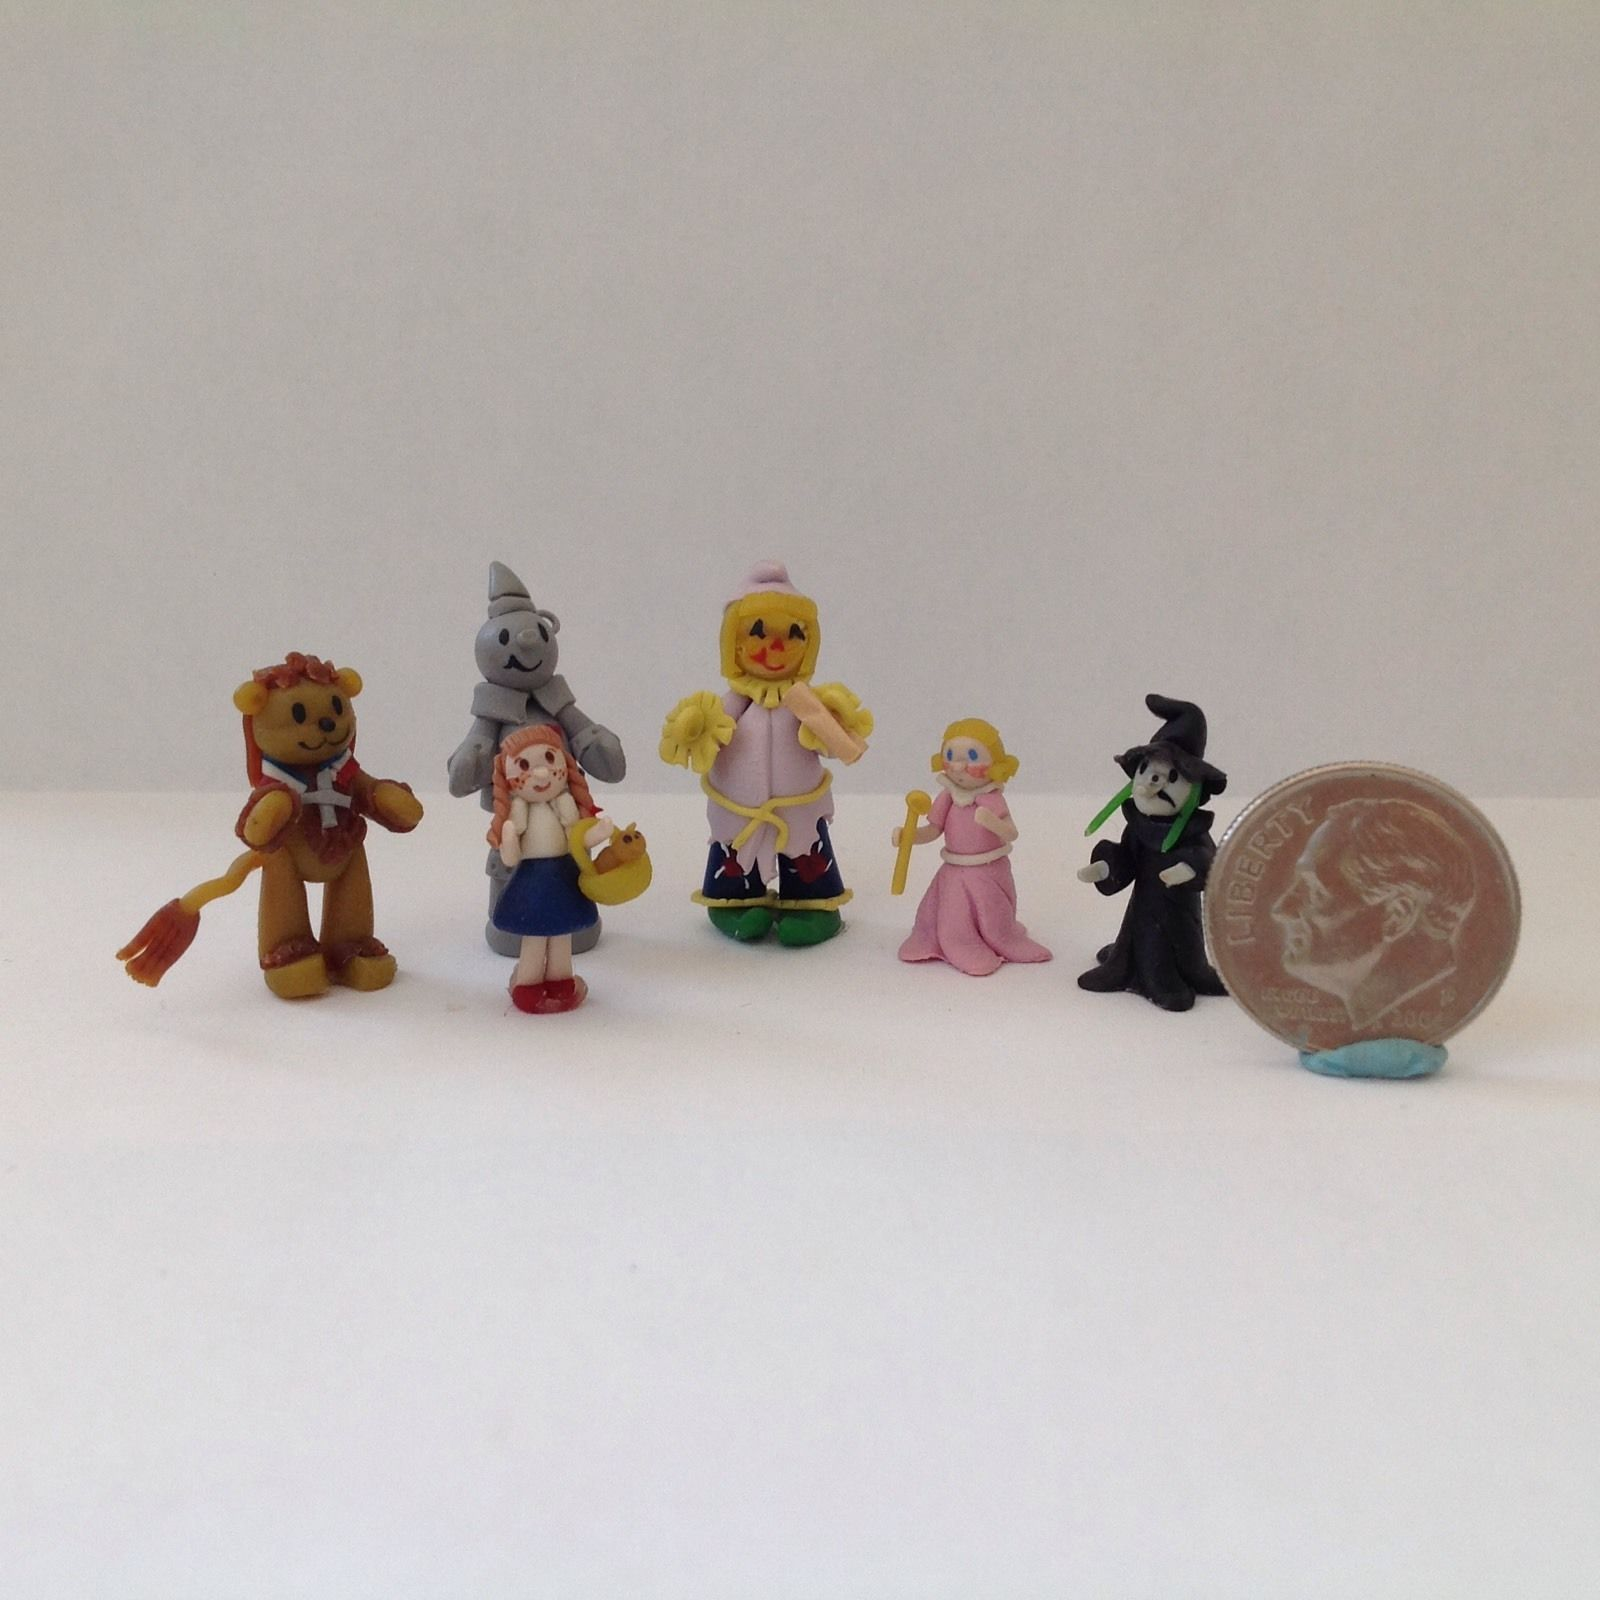 1:24 SCALE MINIATURE BOOK THE WIZARD OF OZ